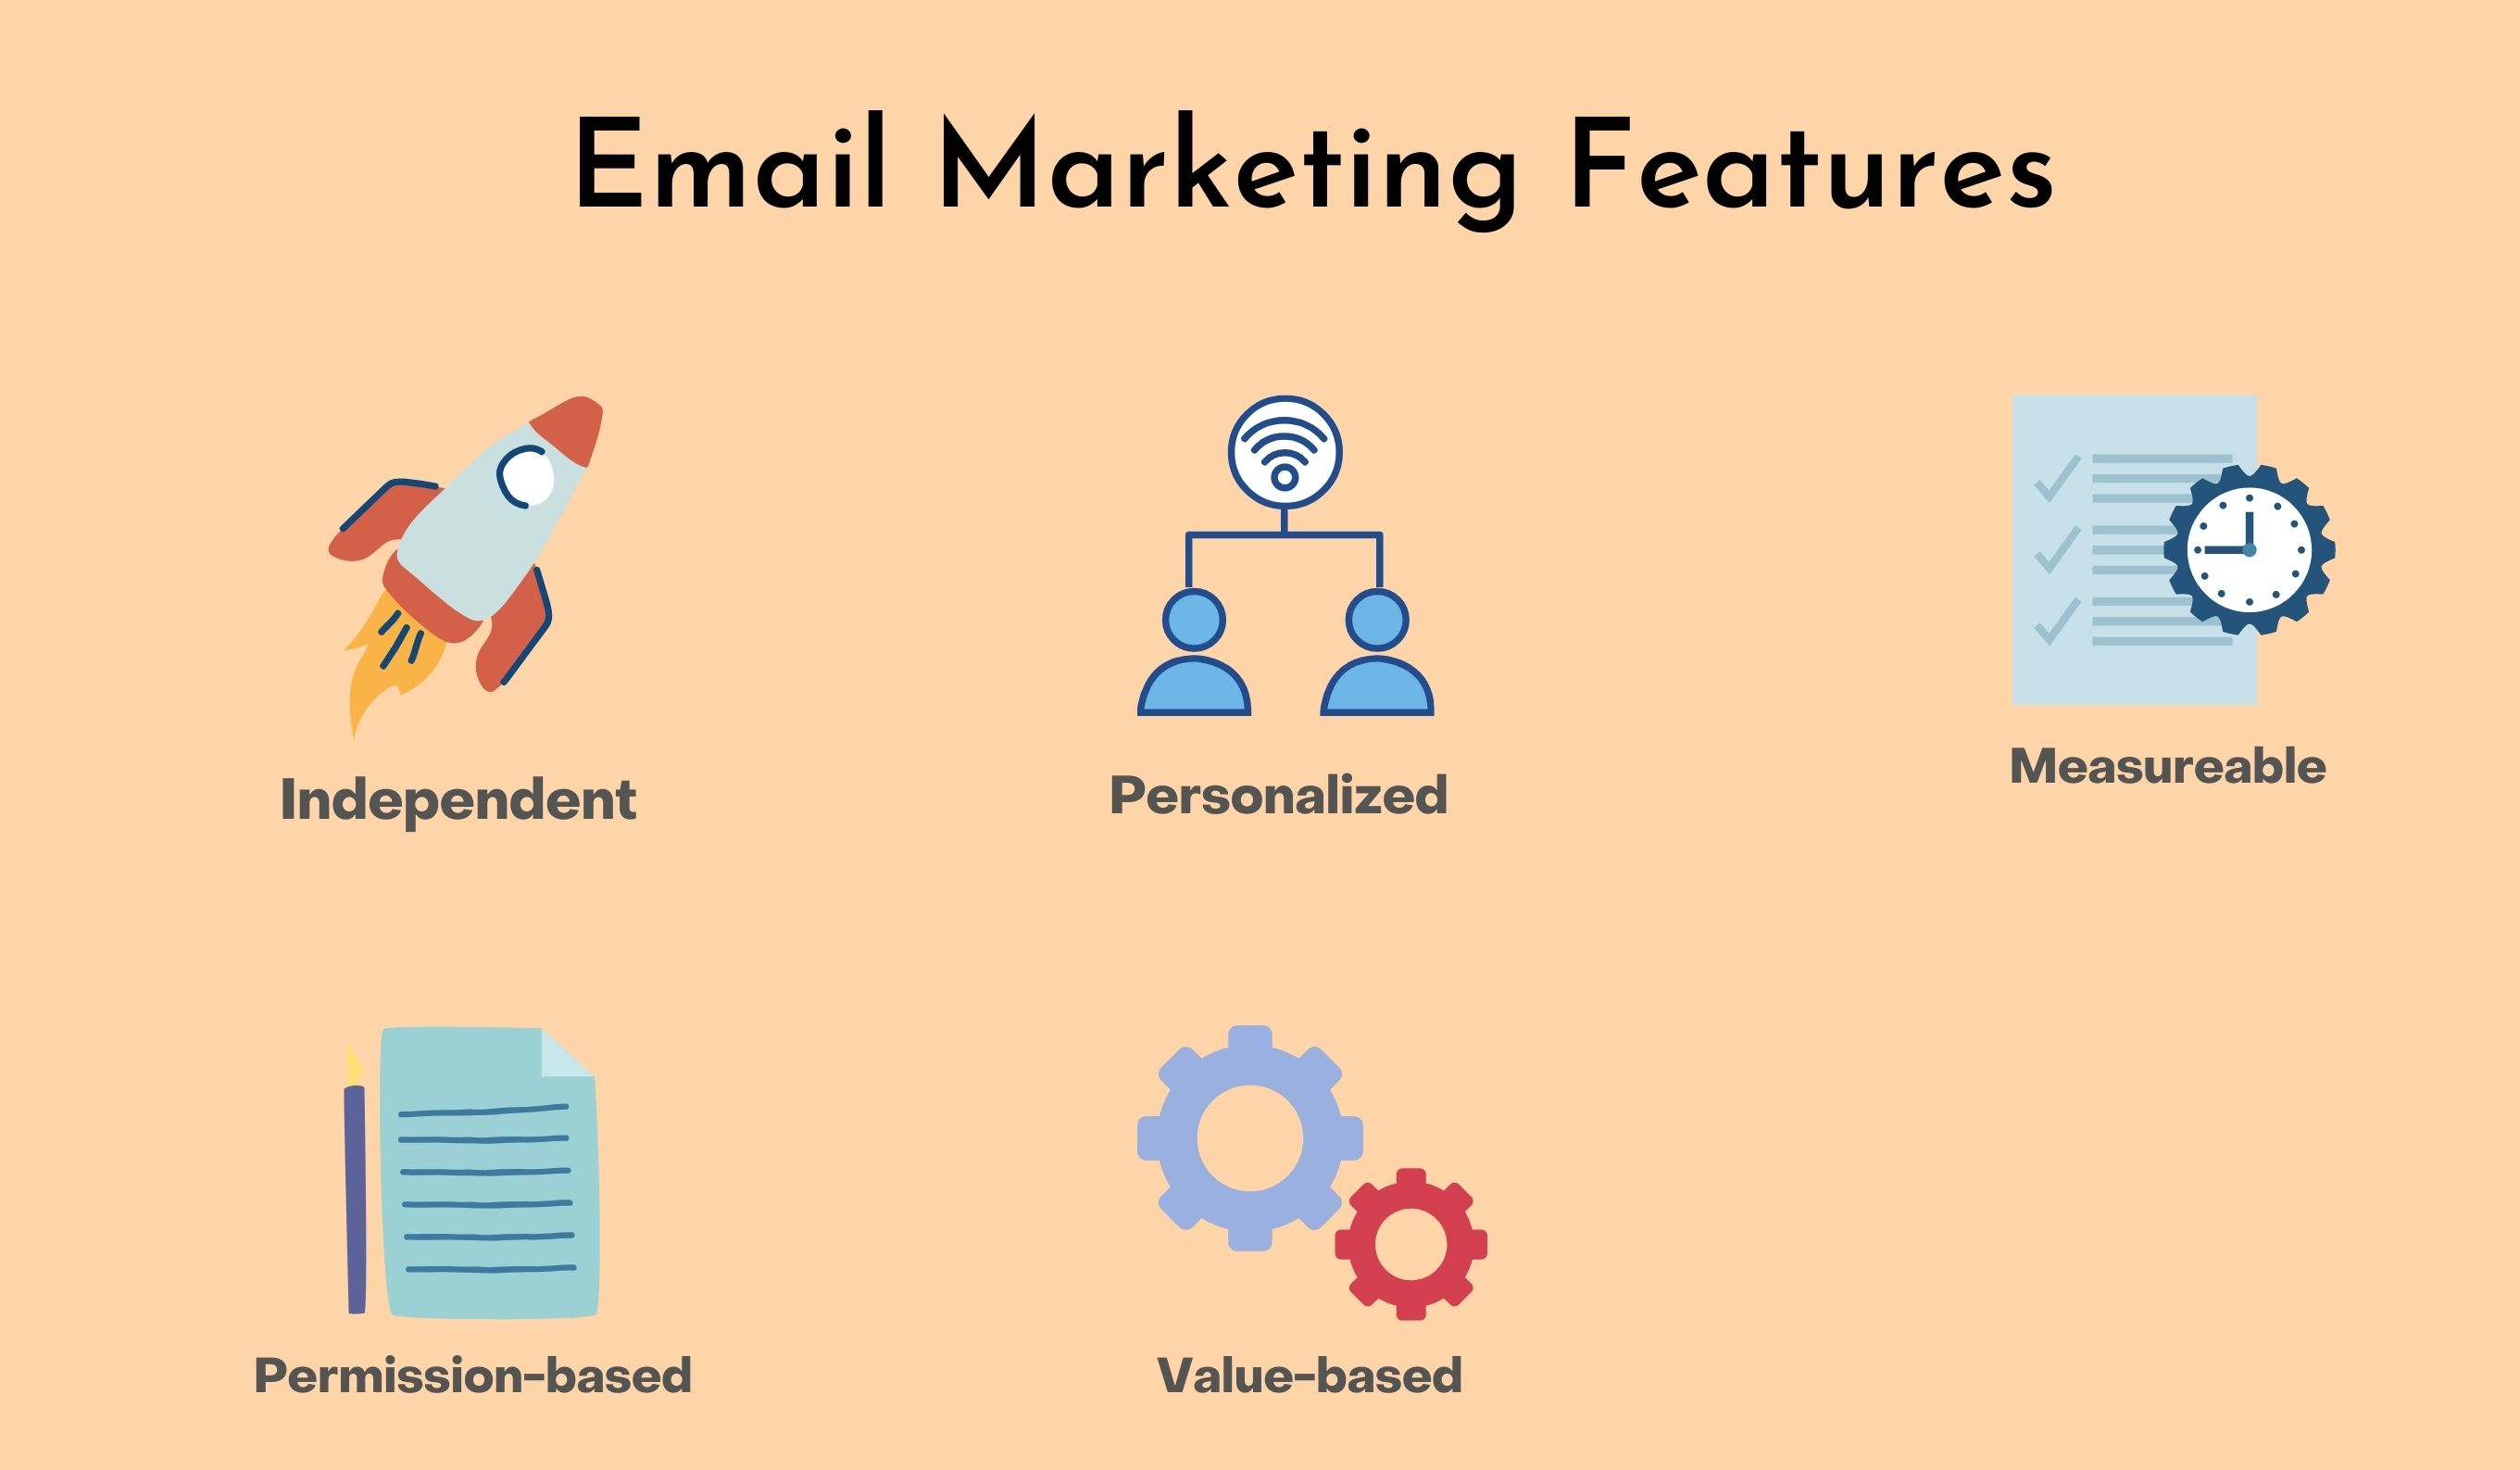 Features of email marketing for agencies